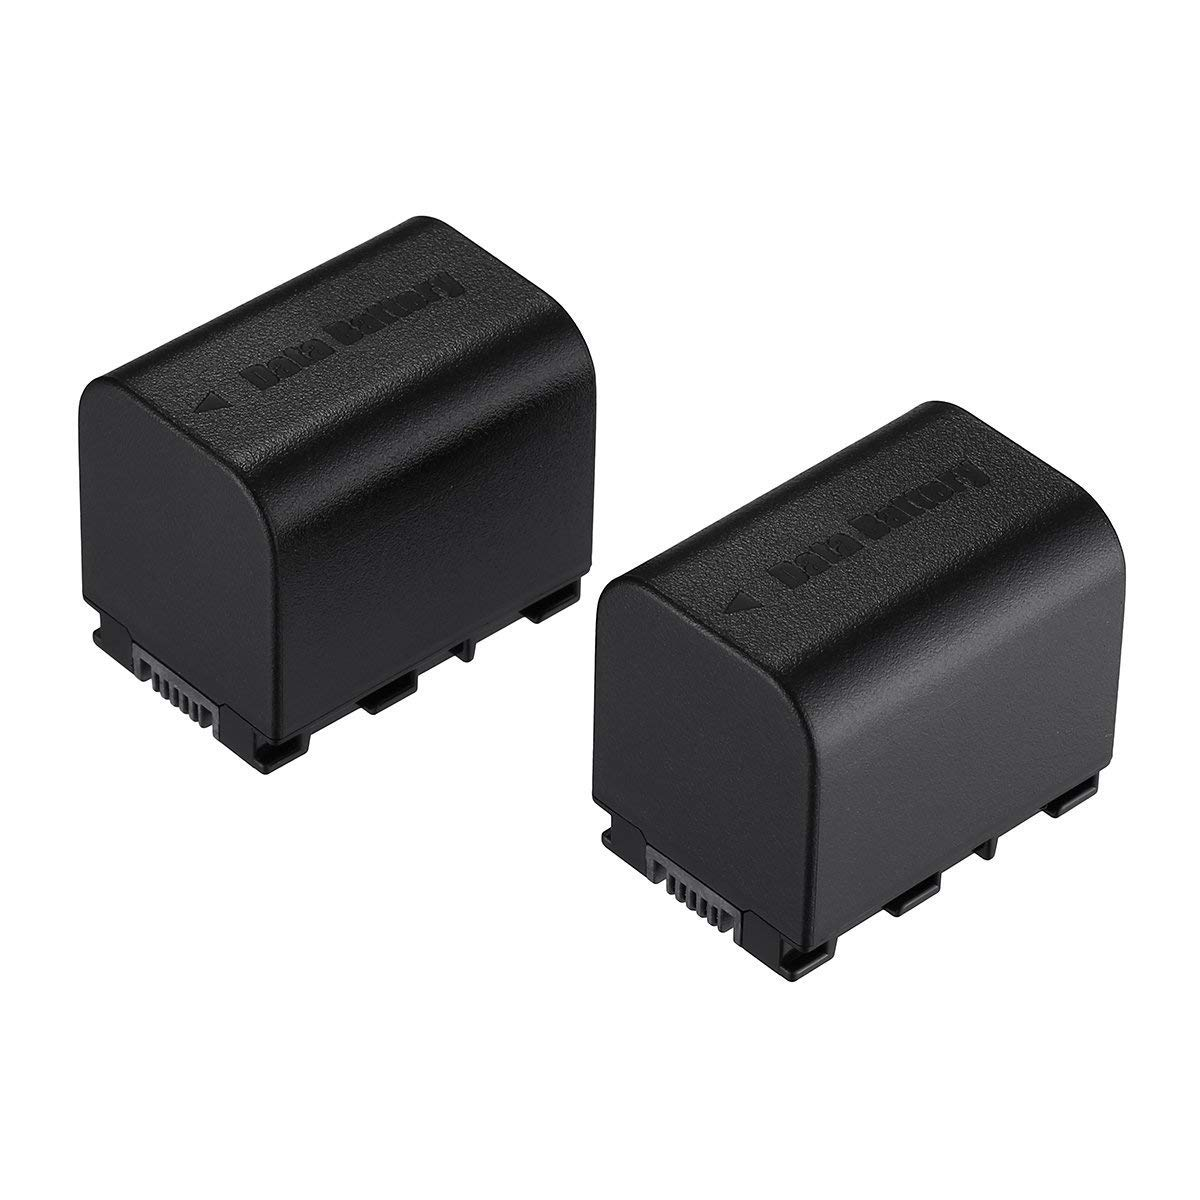 Powerextra 2X NP-W126 Battery Compatible with X100F X-A1 X-A2 X-A3